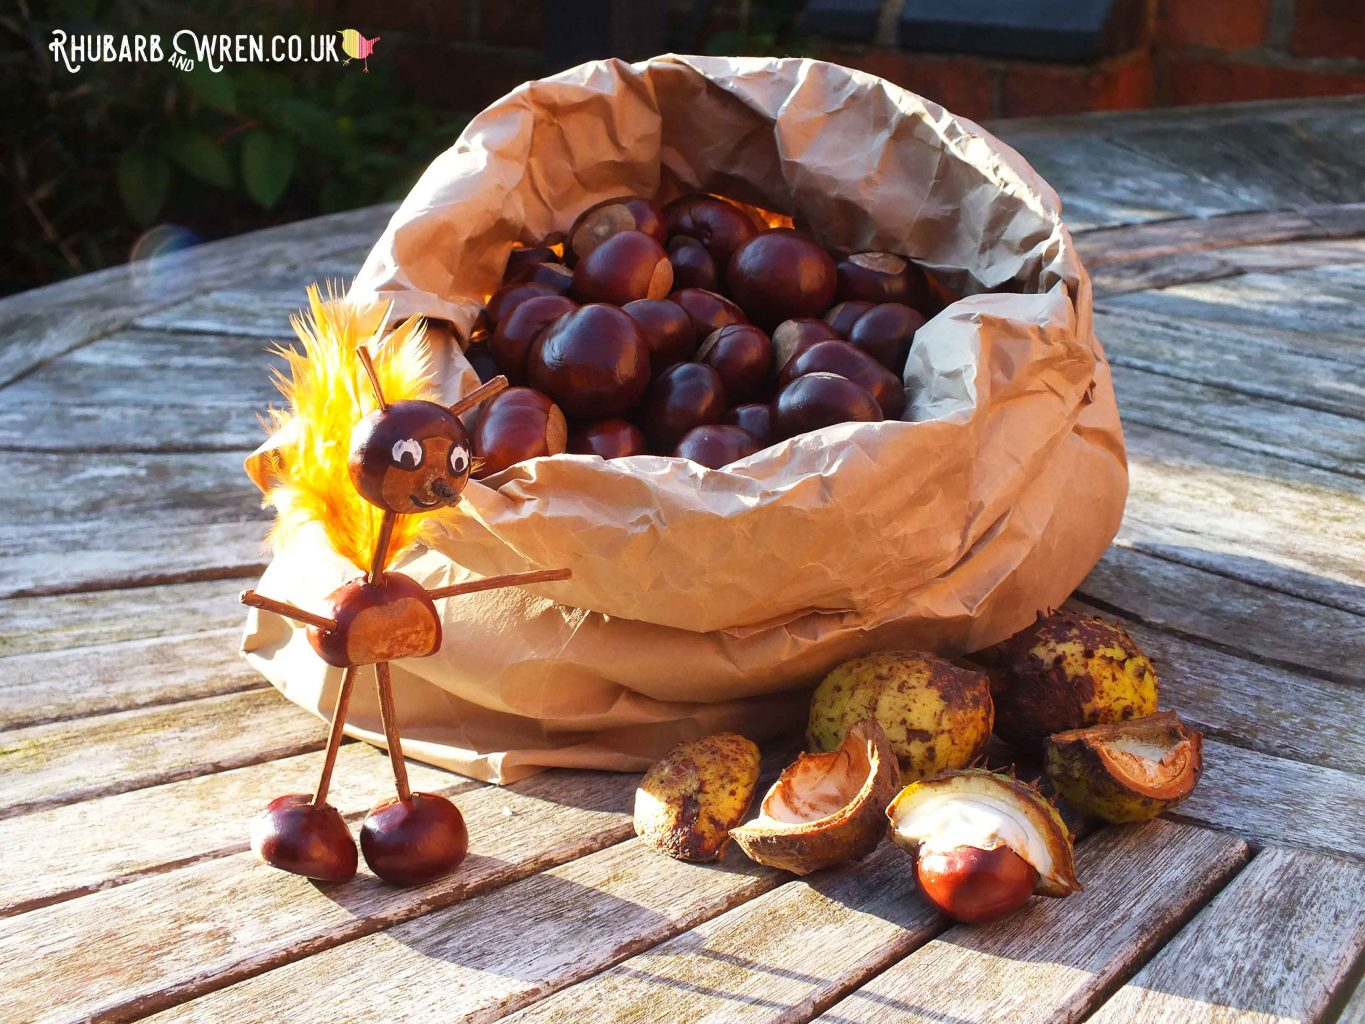 Bag of conkers with a conker creature standing beside it.